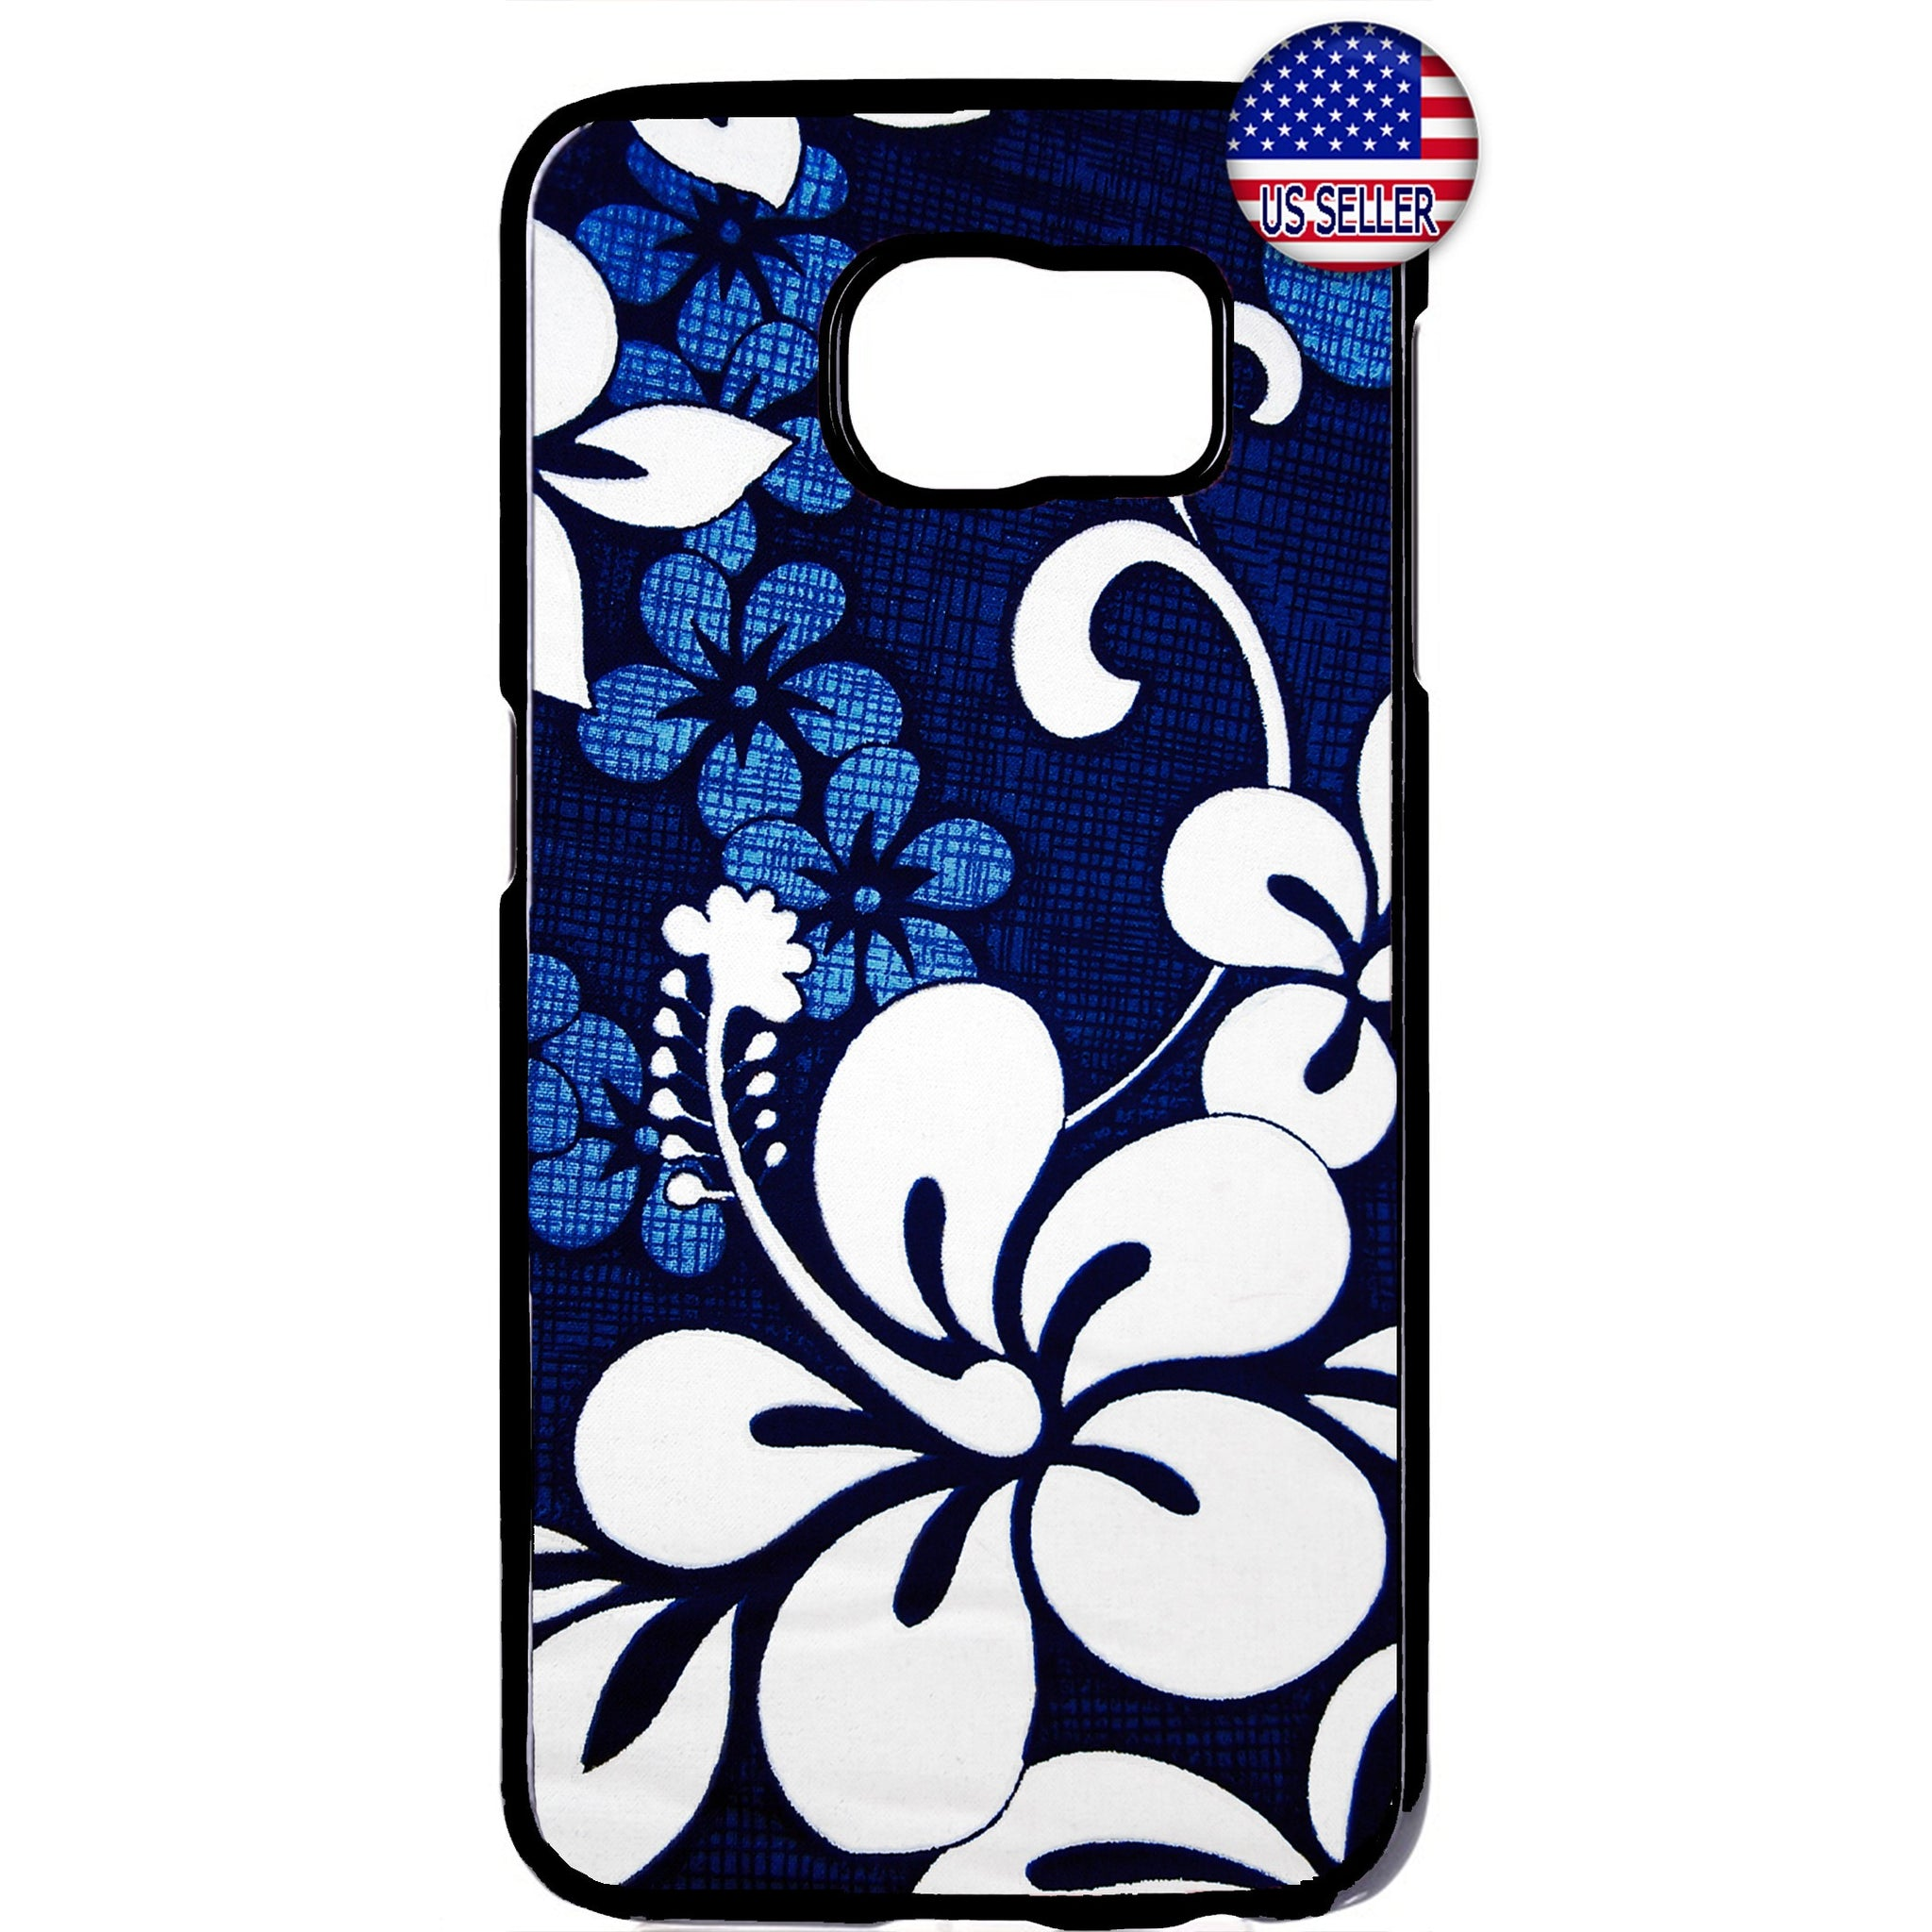 Blue Floral Henna Flower Garden Rubber Case Cover For Samsung Galaxy Note